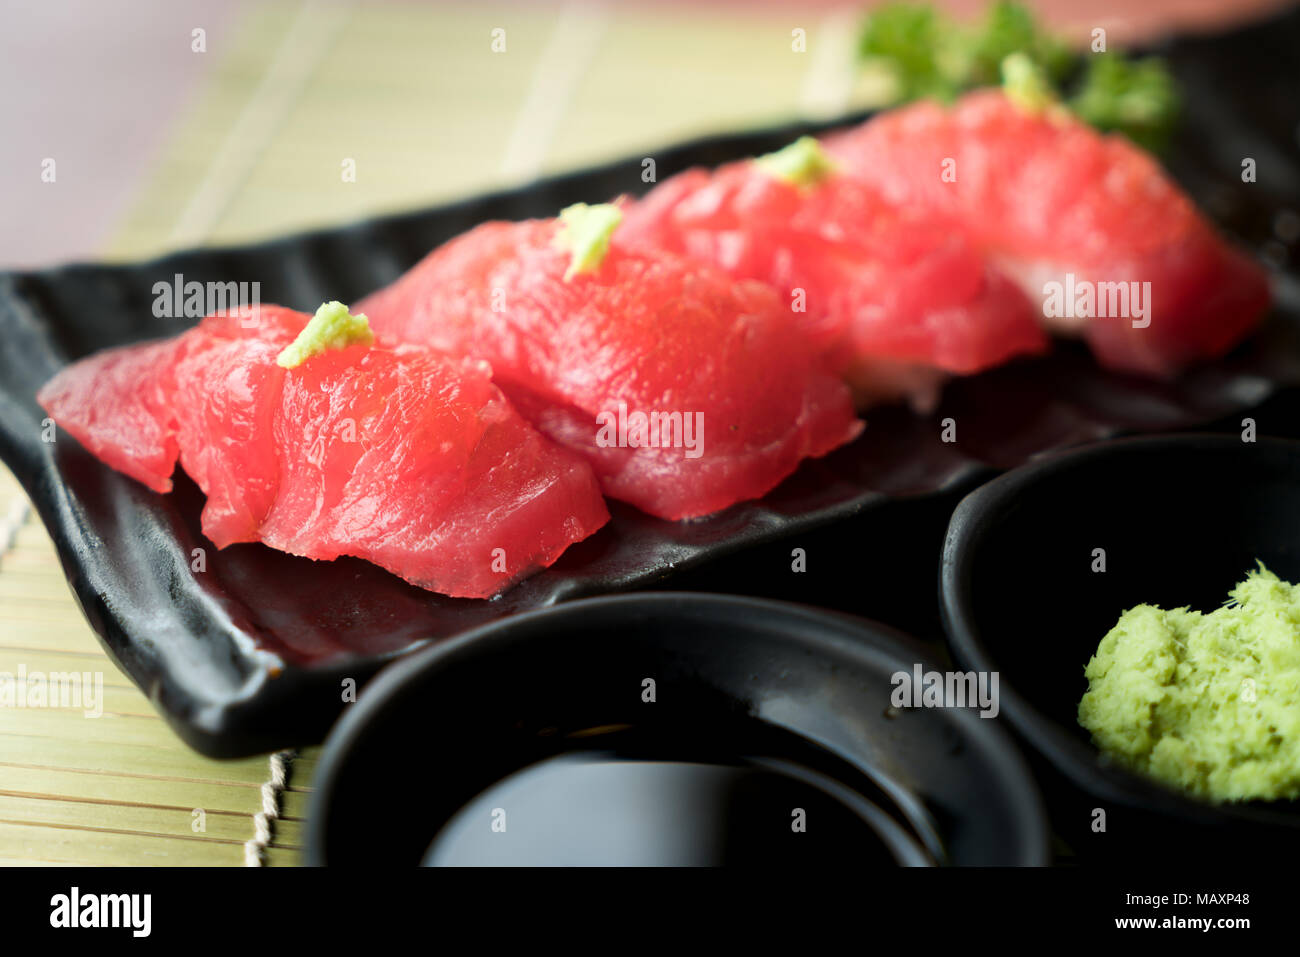 Tuna Sushi On Black Plate Along With Anese Sauce And Green Leaf Decoration Food Close Up At